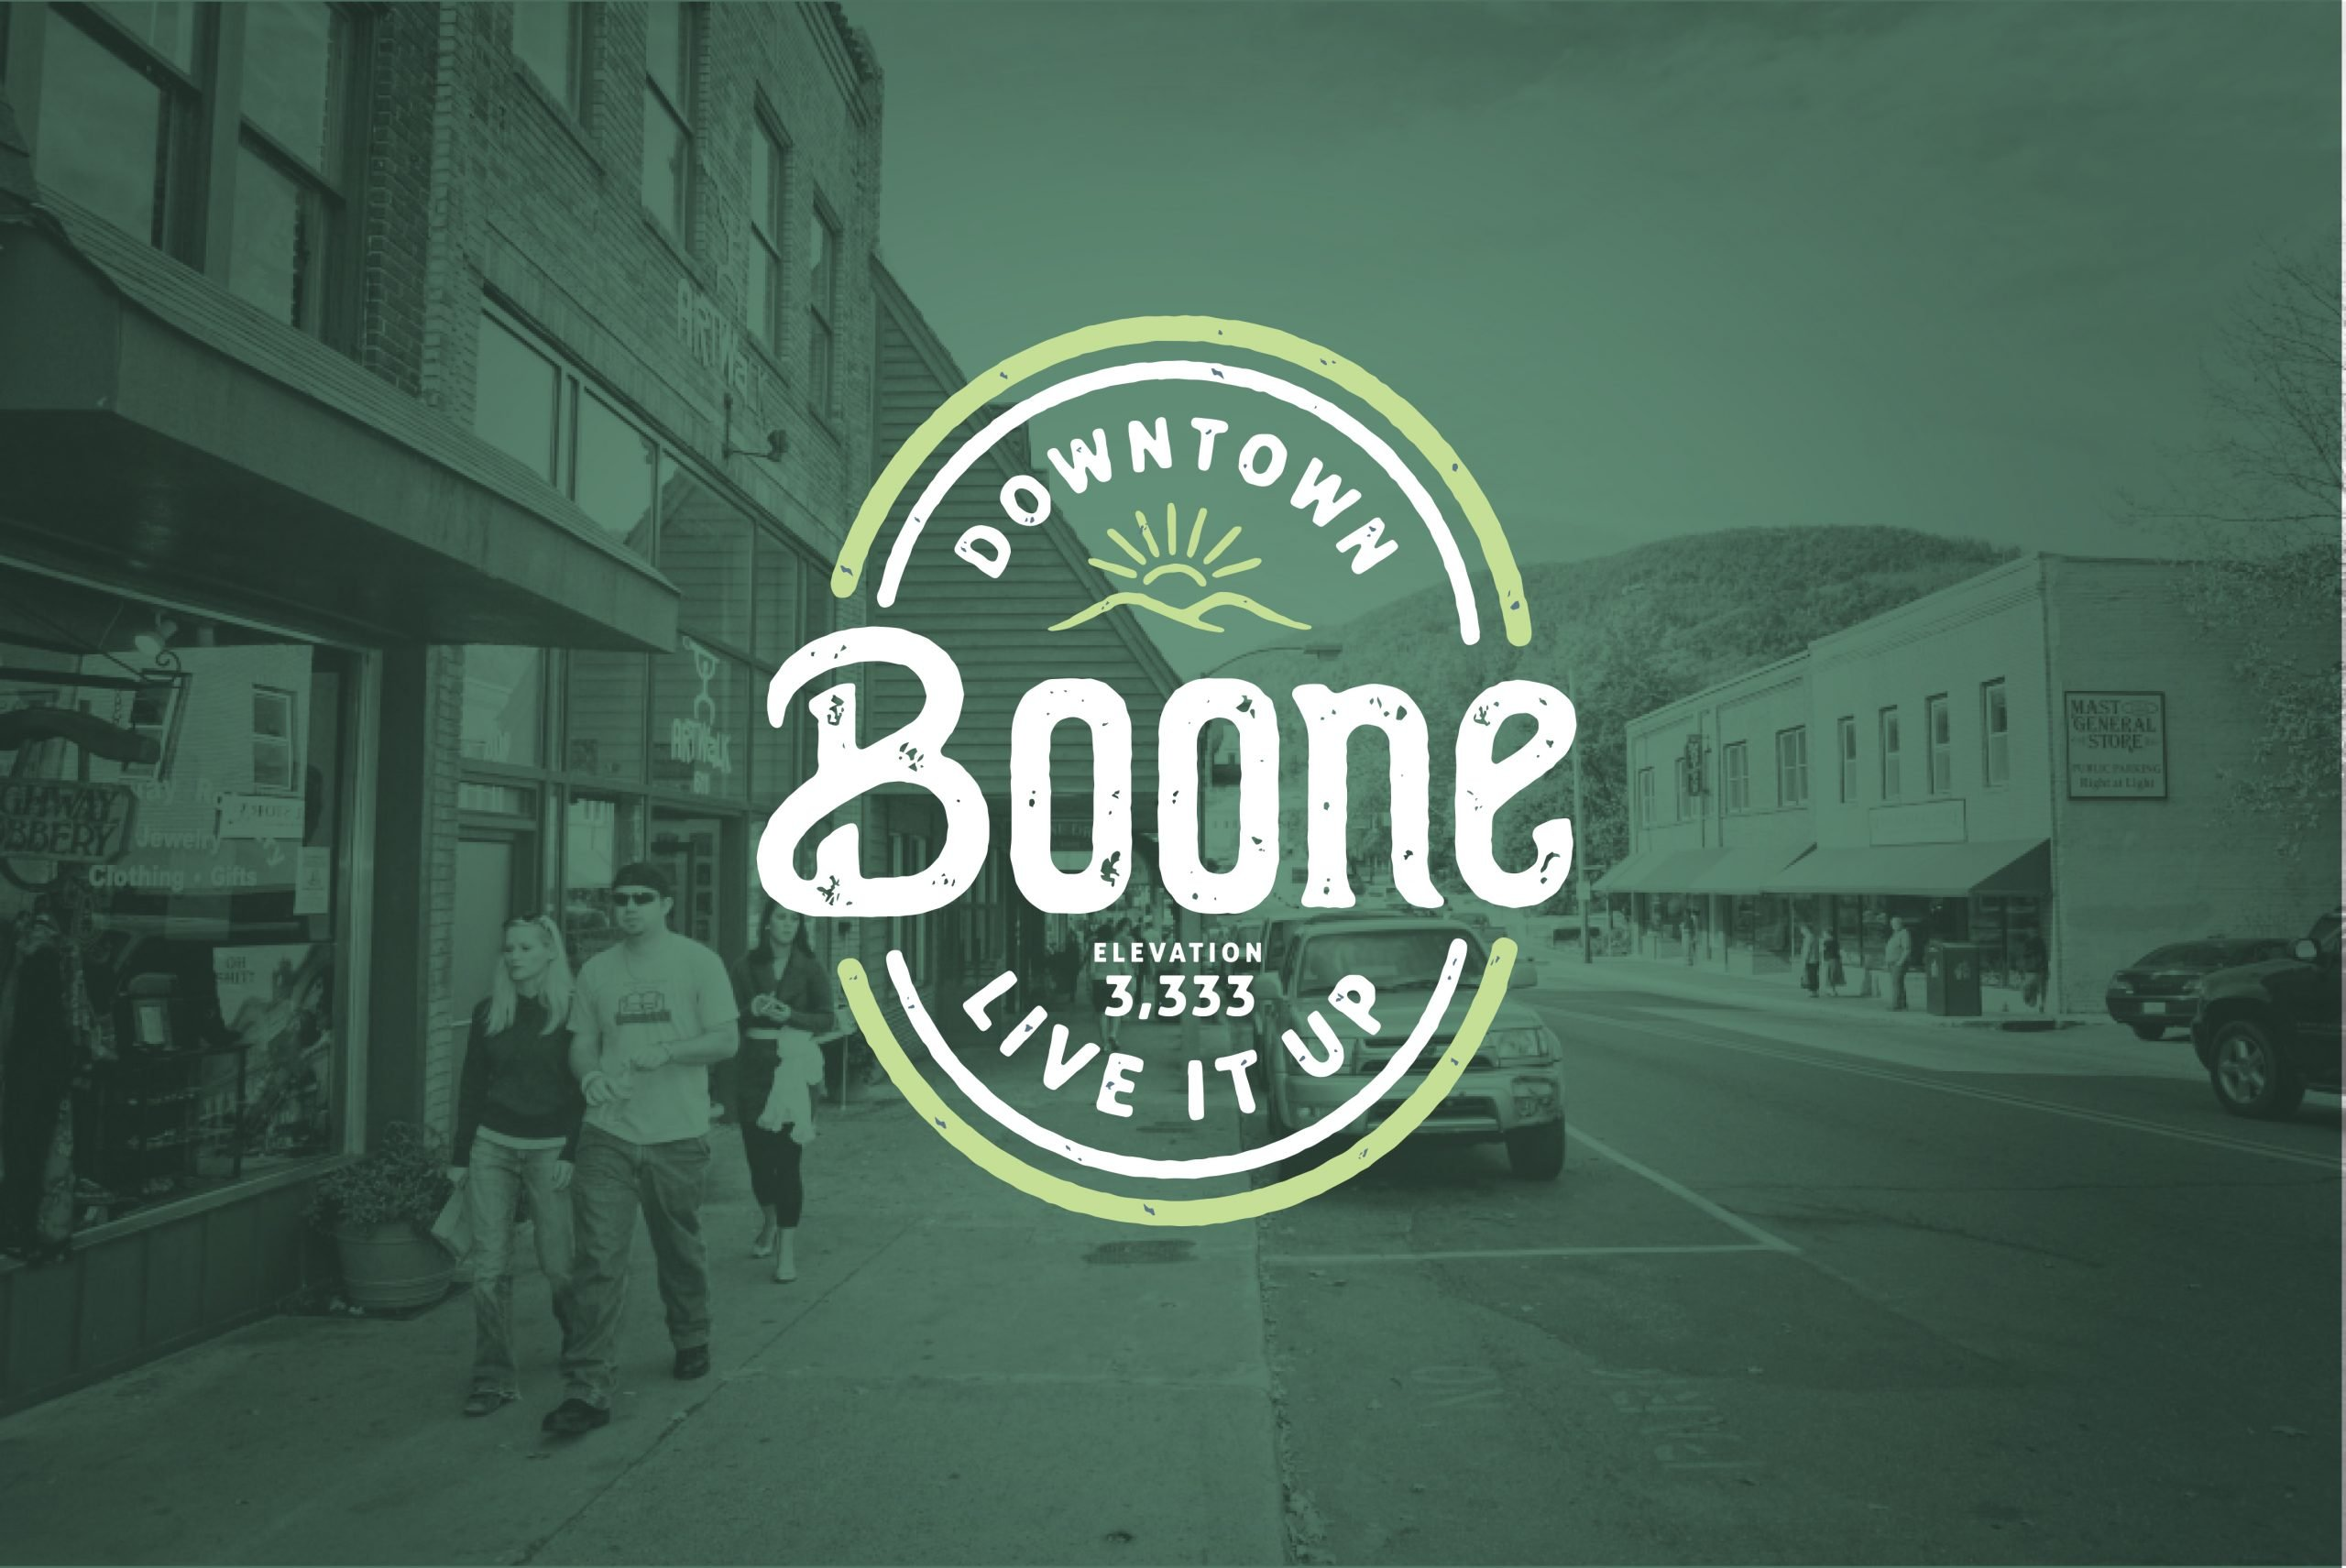 Downtown Boone Brand Image